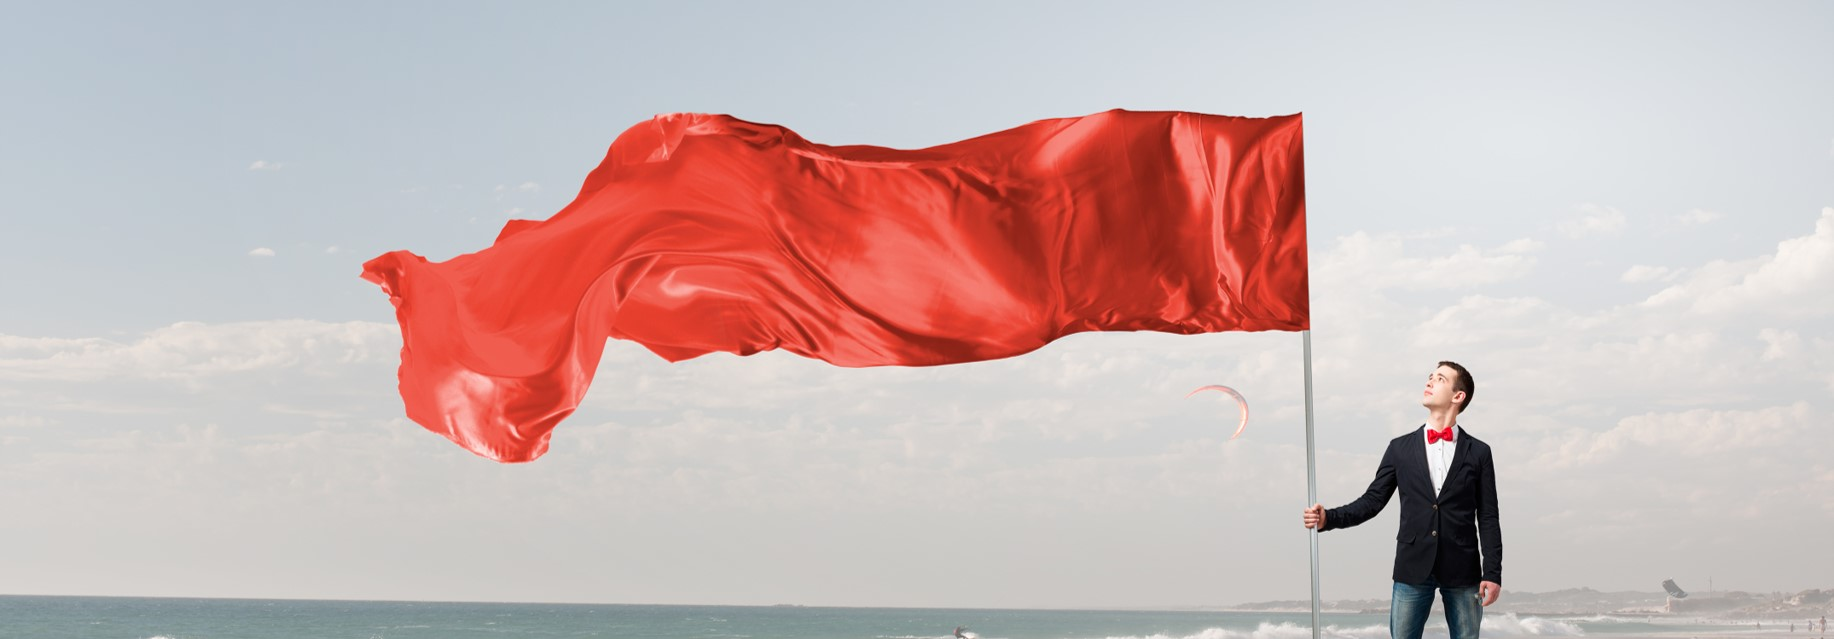 red-flag-cropped